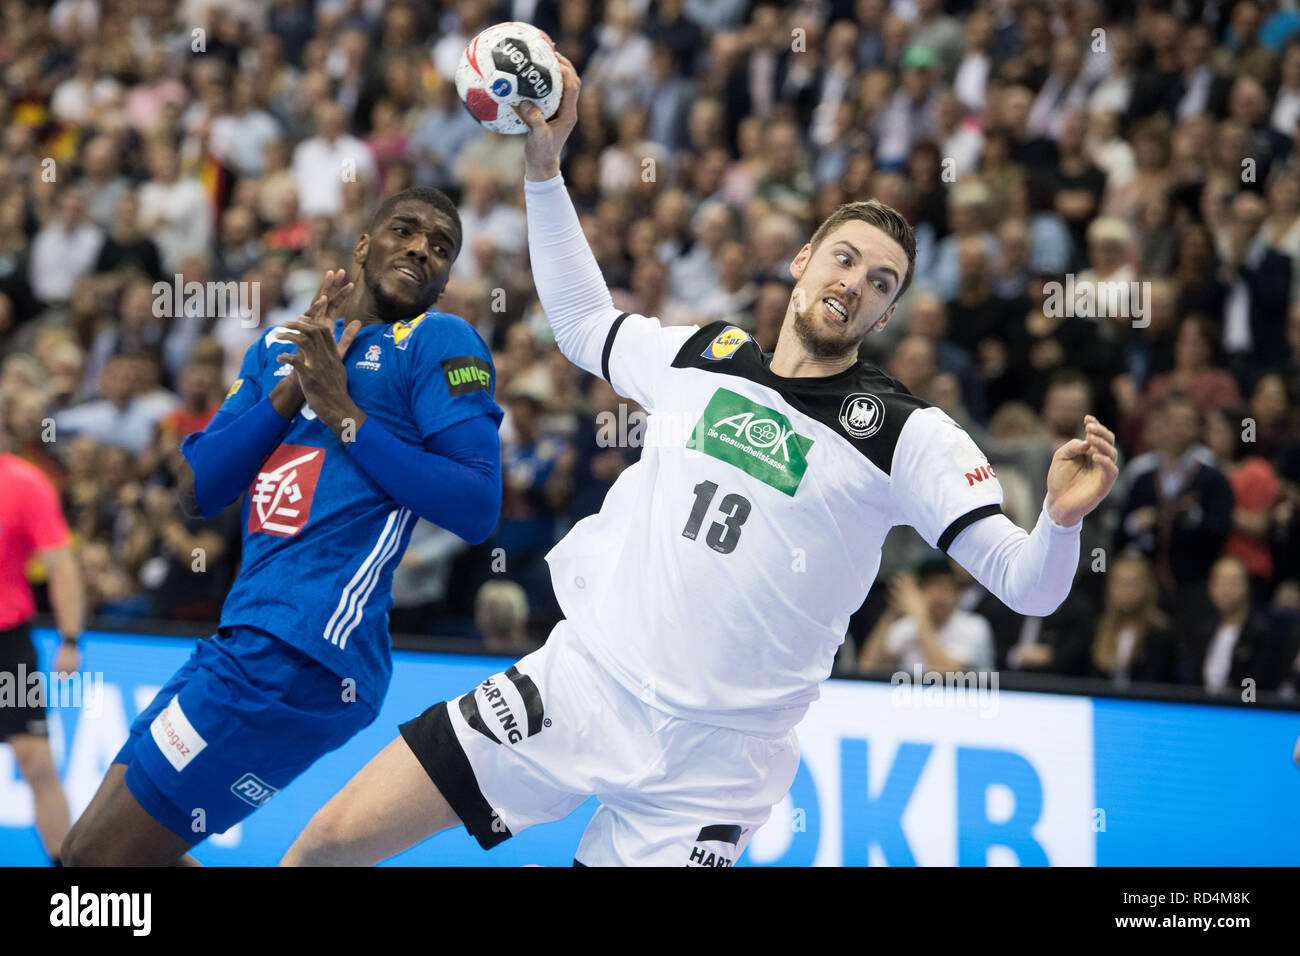 Berlin, Deutschland. 15th Jan, 2019. Hendrik PEKELER (GER) throws on goal, throw, goal throw, action, preliminary round group A, Germany (GER) - France (FRA) 25:25, on 15.01.2019 in Berlin/Germany. Handball World Cup 2019, from 10.01. - 27.01.2019 in Germany and Denmark.   Usage worldwide Credit: dpa/Alamy Live News Stock Photo